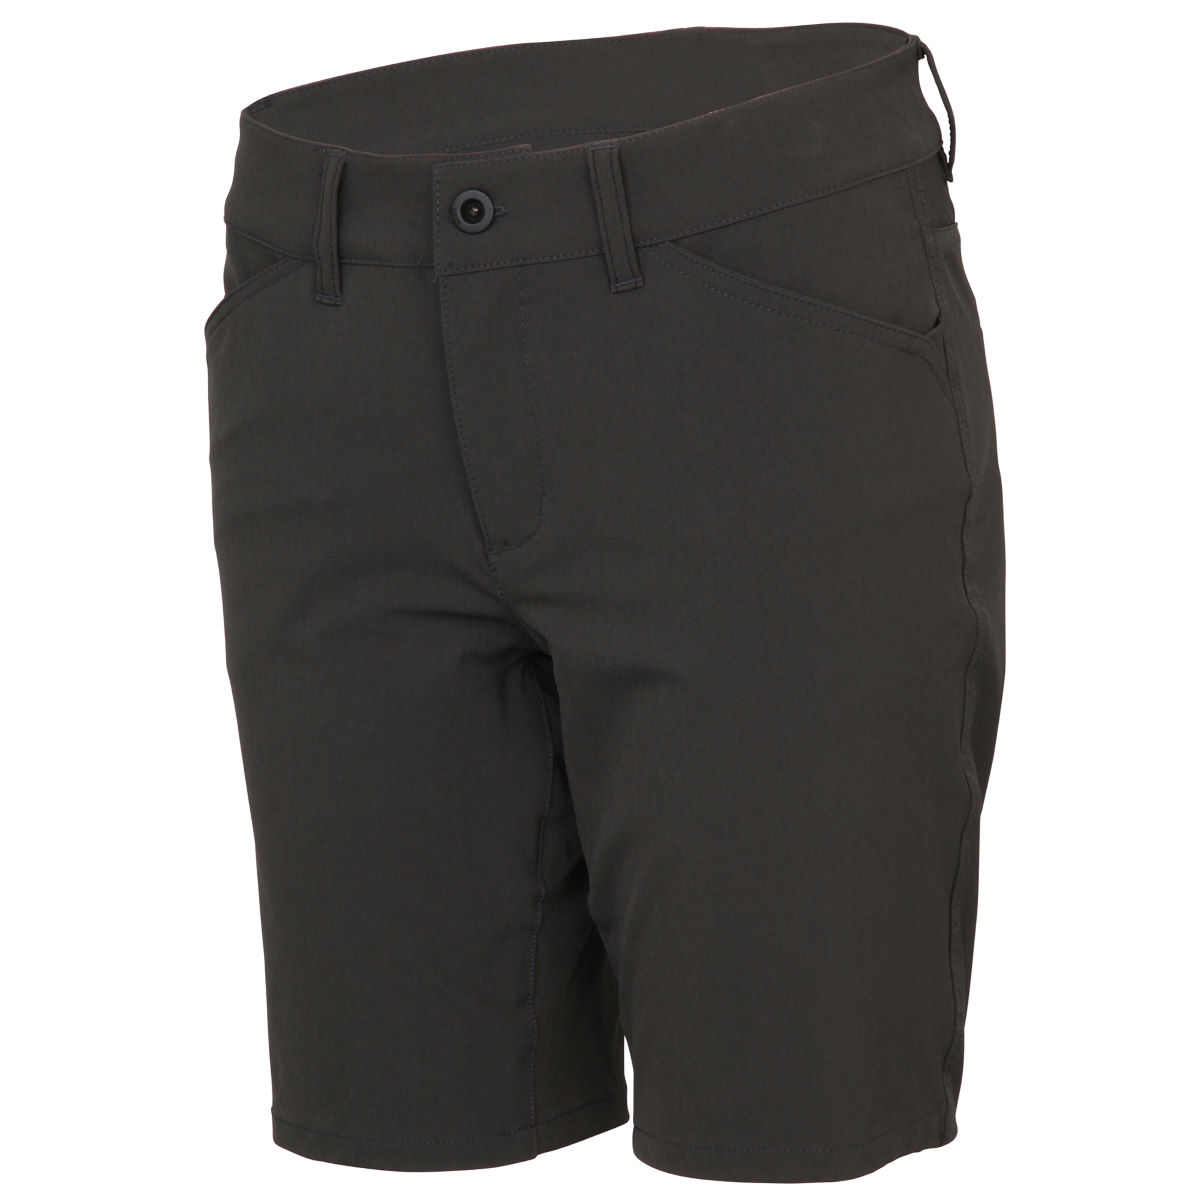 Short Femme Giro CA Ride 2.0 - L Gris Shorts amples